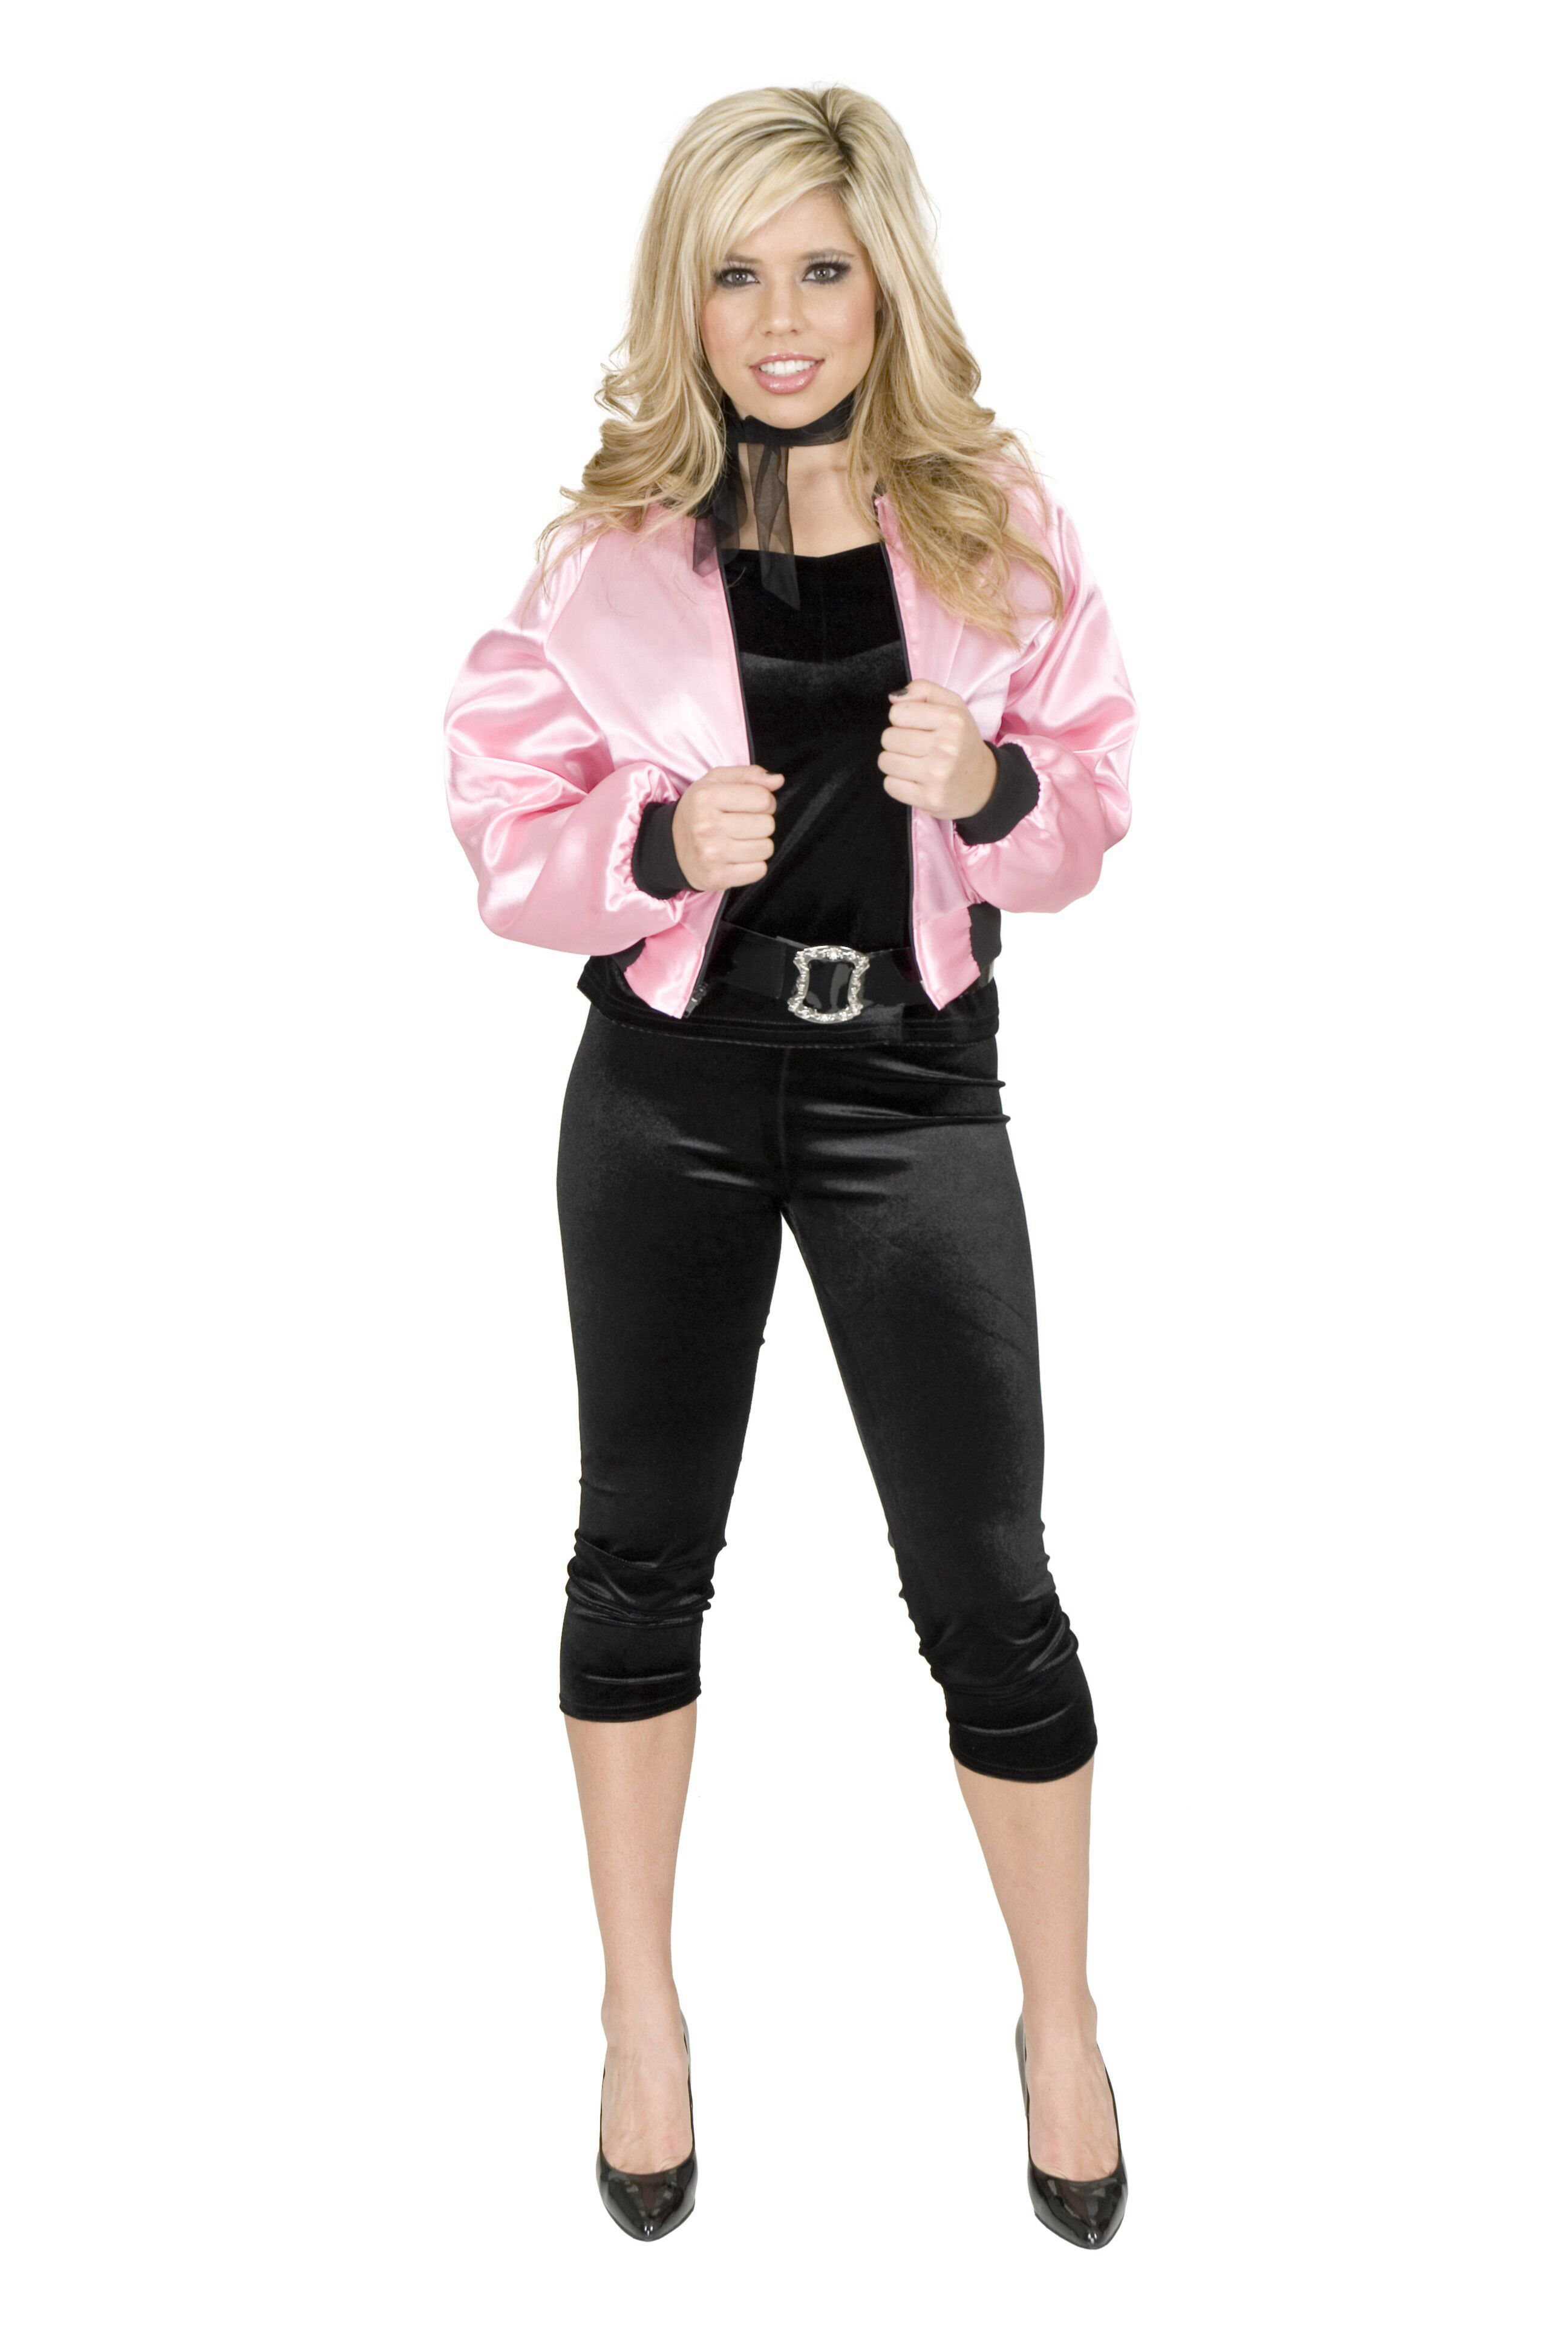 Greaser girl possible outfit | Greaser Girl | Pinterest | Greaser girl